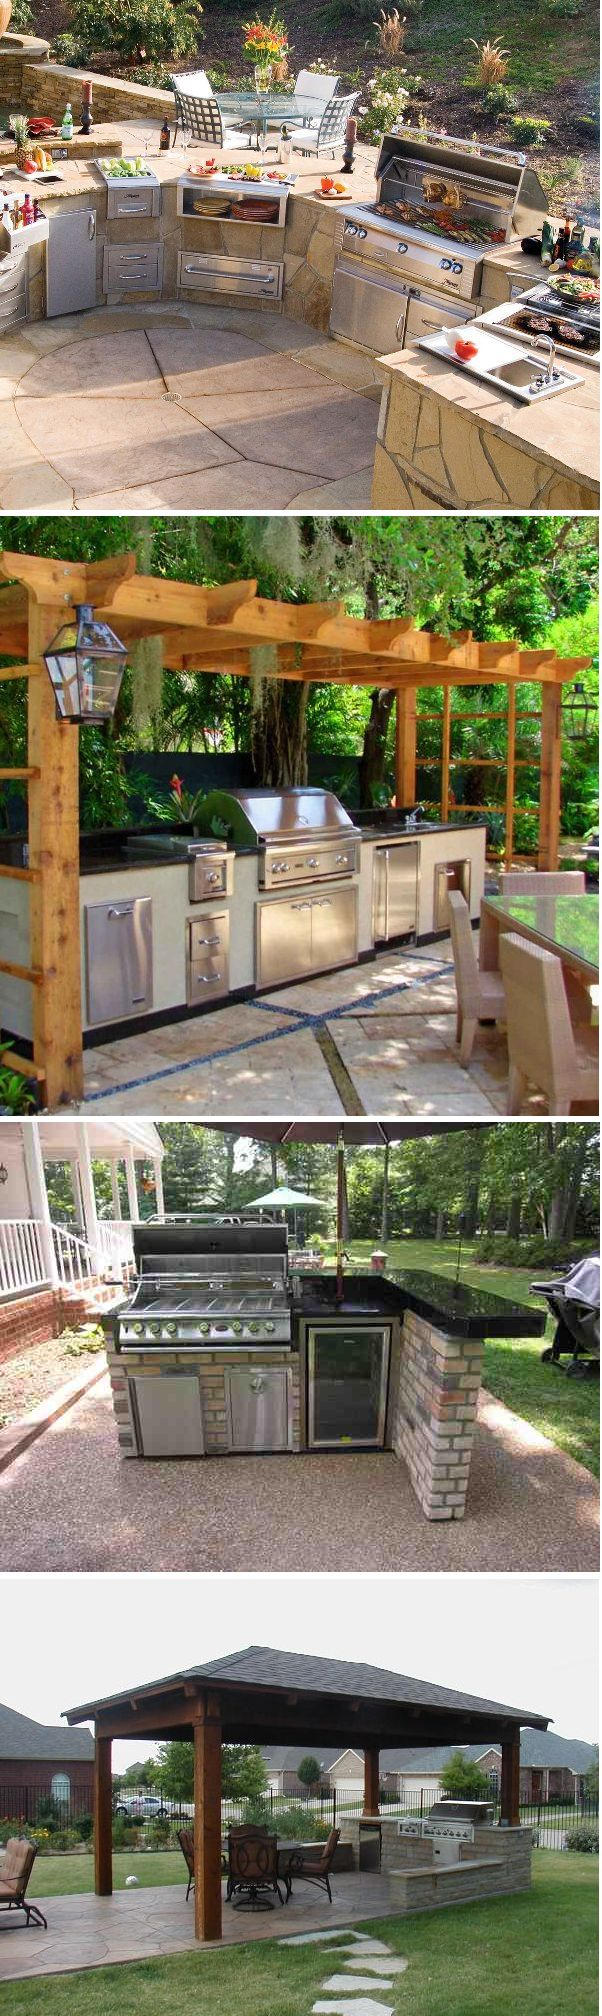 Find out the best and awesome outdoor kitchen design plans, kits & ideas for your dream home https://www.uk-rattanfurniture.com/product/brown-lounge-bed-made-in-pe-rattan-with-canopy-strong-and-firm-cushions-cover-is-included-suitable-for-both-indoor-and-outdoor-use-by-ecommerce-excellence/